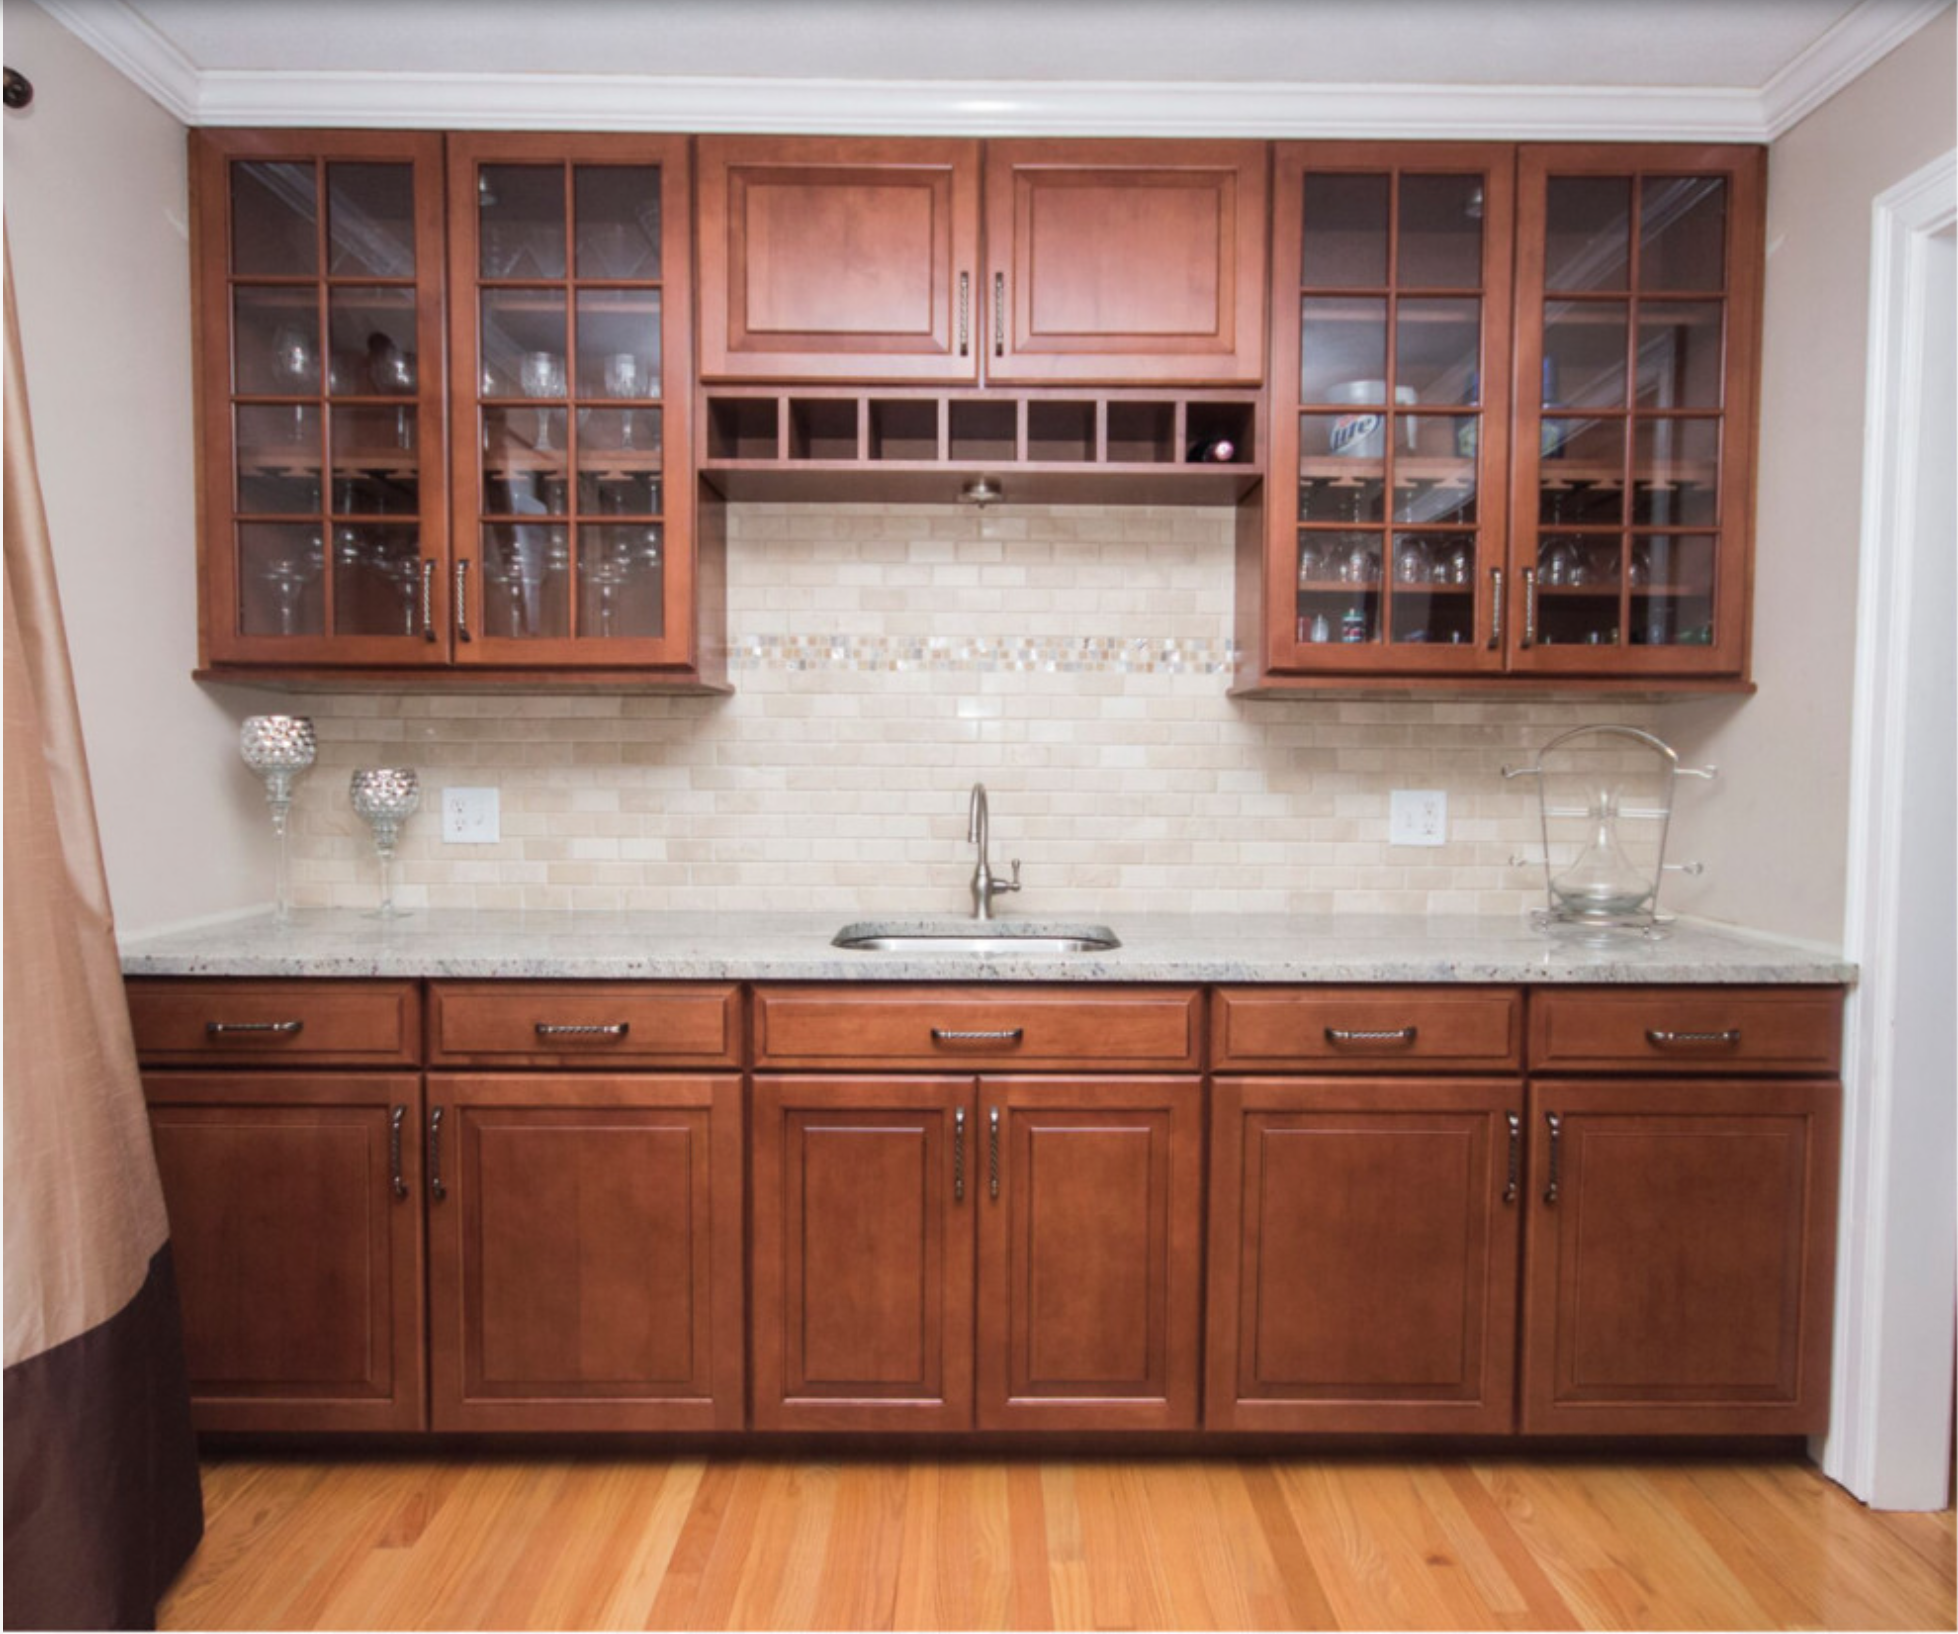 Maple Cabinet wet bar, Maple cabinets, White granite ... on Maple Cabinets With White Granite Countertops  id=50632